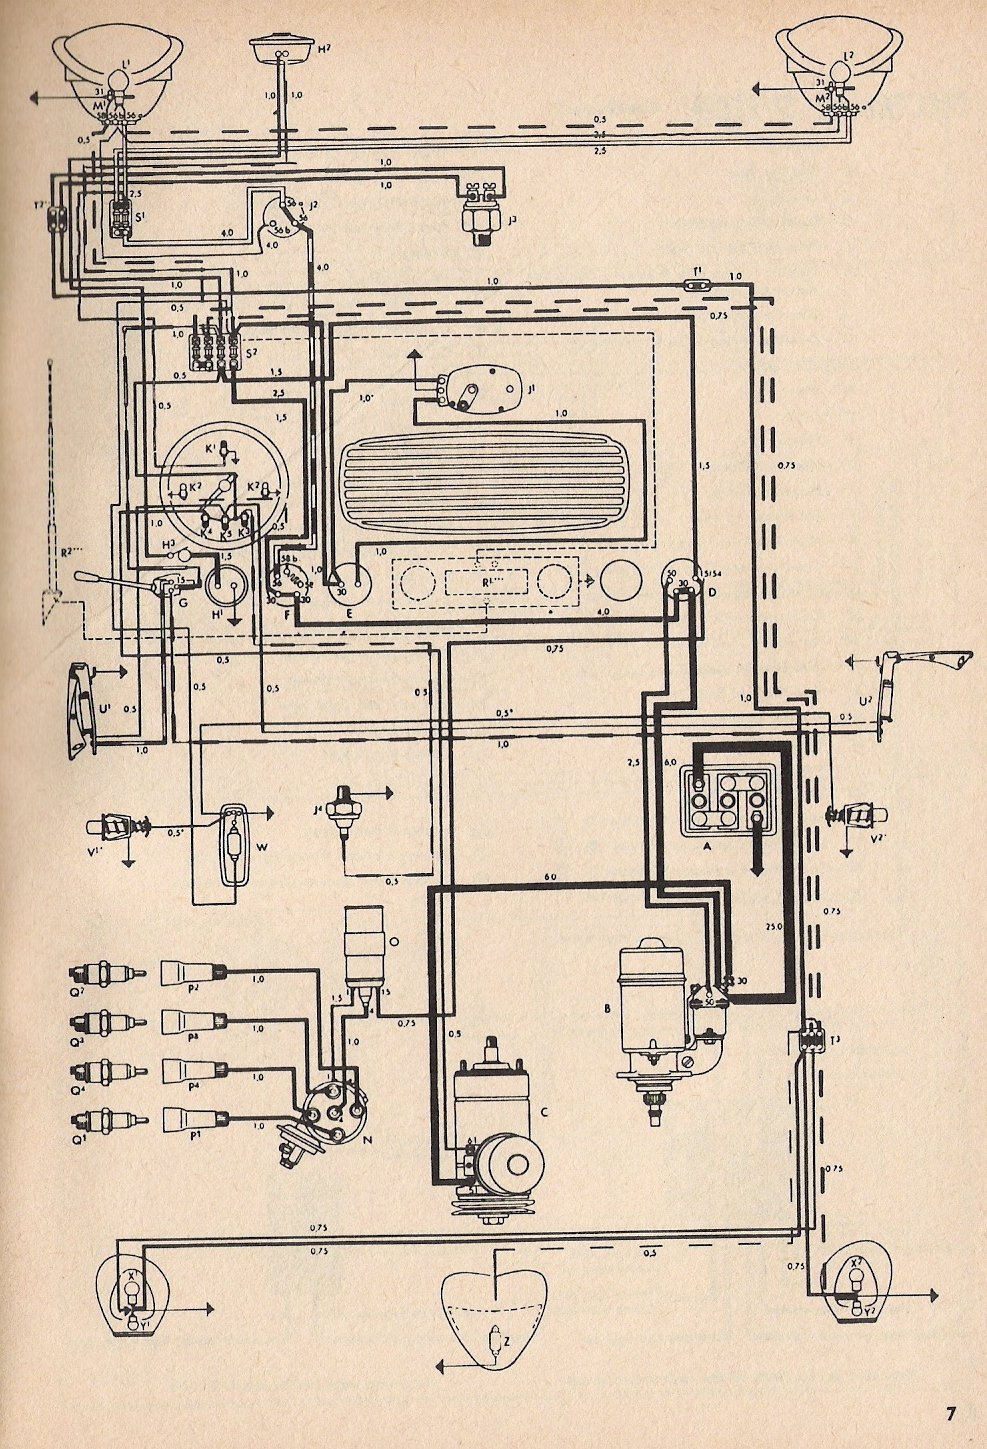 65 volkswagen wiring diagram 65 free engine image for vintage vw wiring diagram vintage vw wiring diagrams